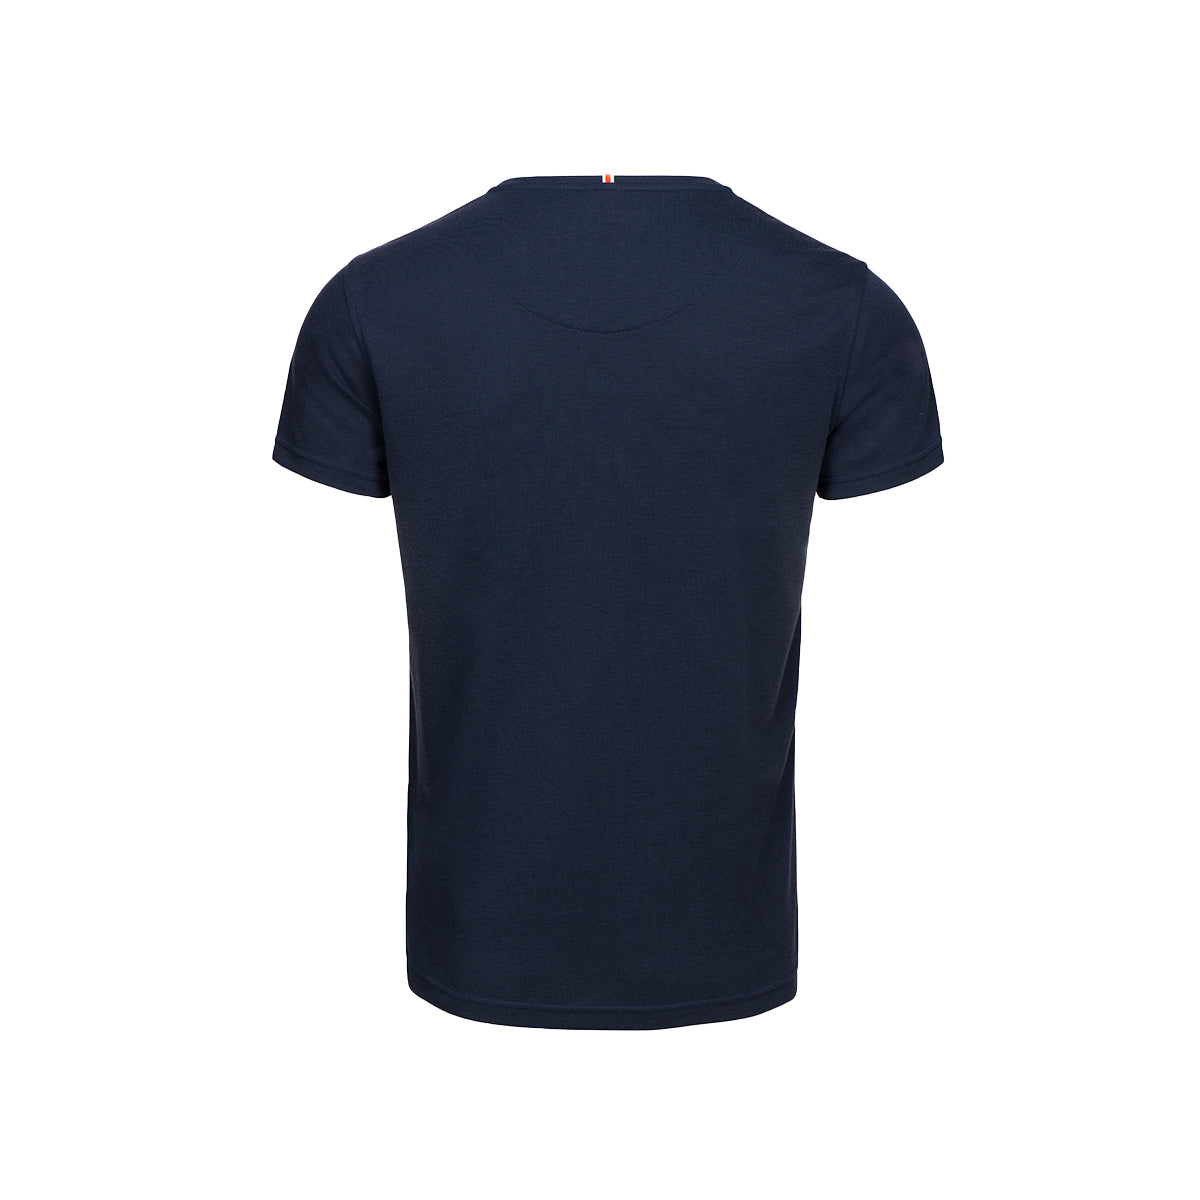 Citara O Neck T-Shirt - background::white,variant::navy